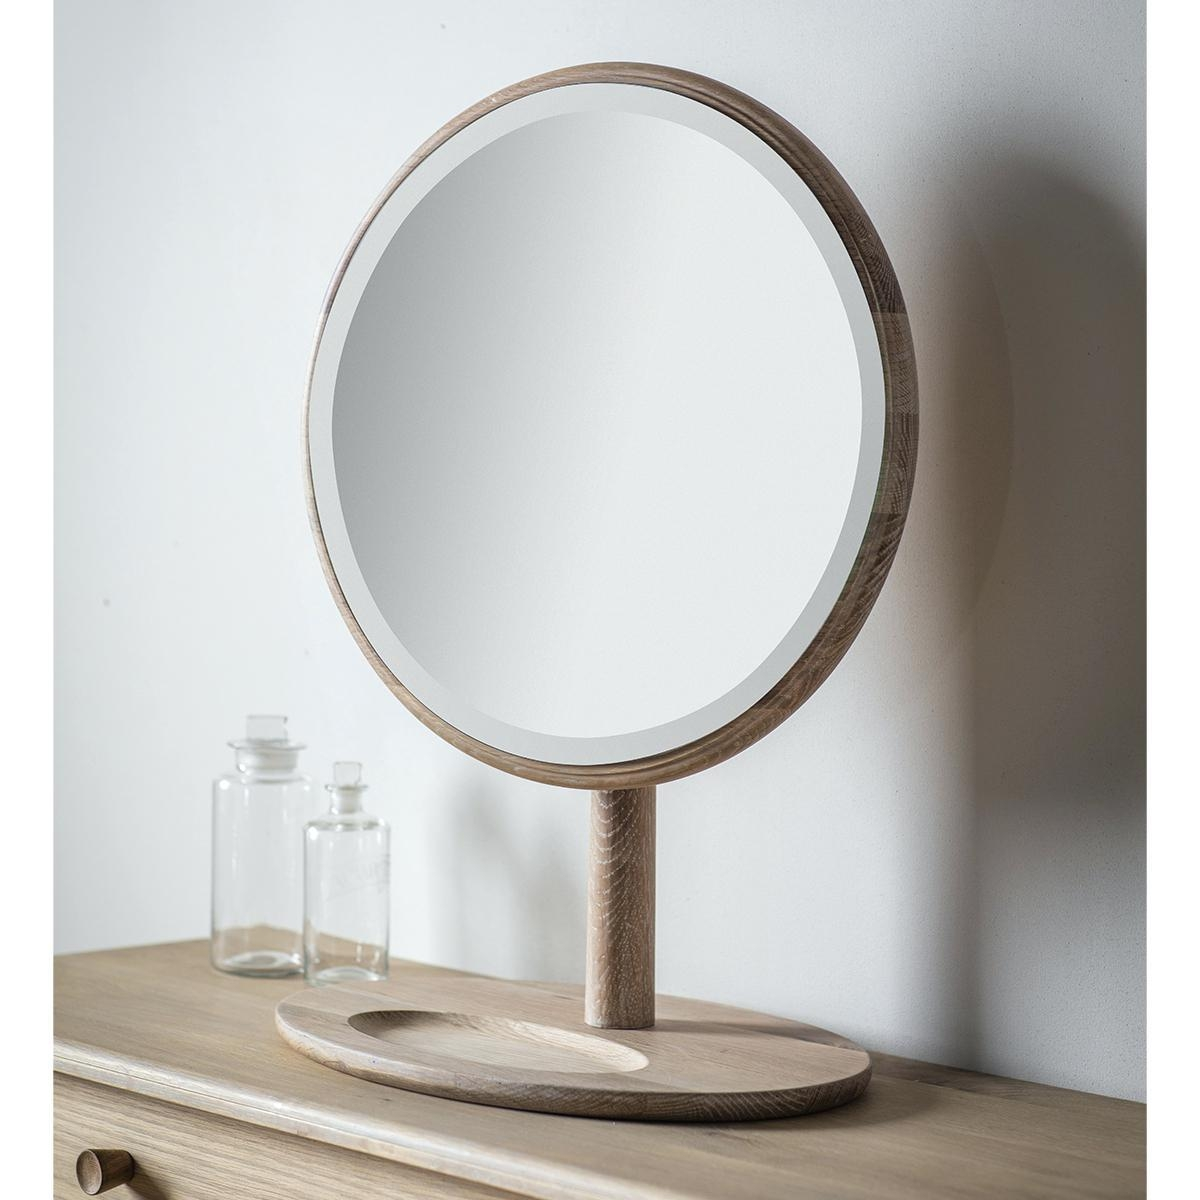 Lila Range White Dressing Table And Mirrorantique Oval Mirror Throughout Dressing Mirrors Free Standing (Image 17 of 20)